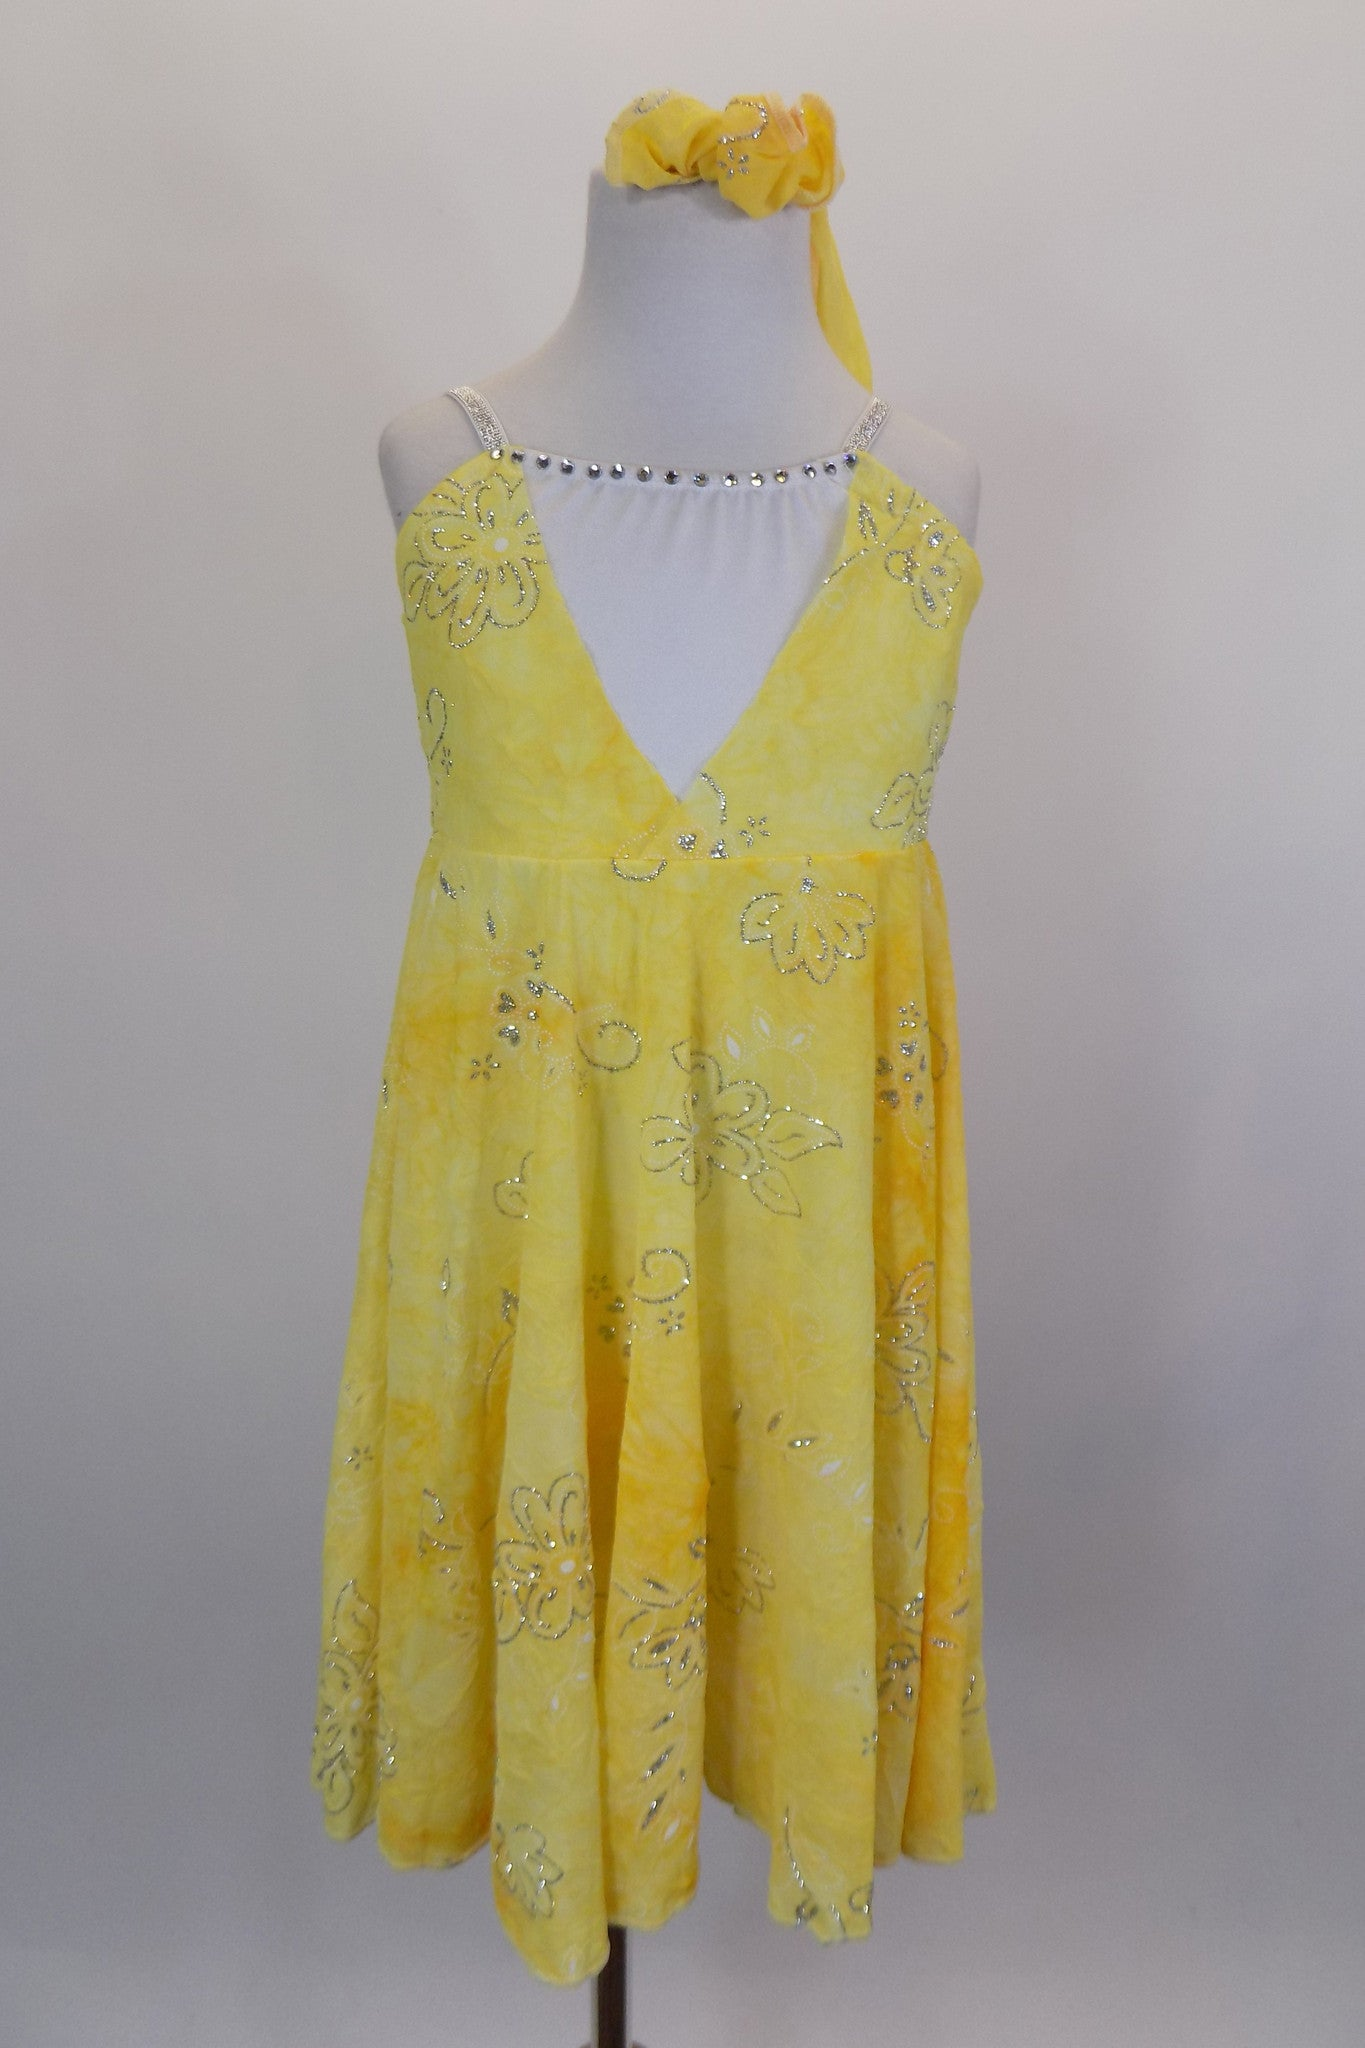 Yellow mesh lyrical dress with silver swirl designs has low deep V front with white crystaled center & crystaled straps. Comes with matching hair accessory. Front